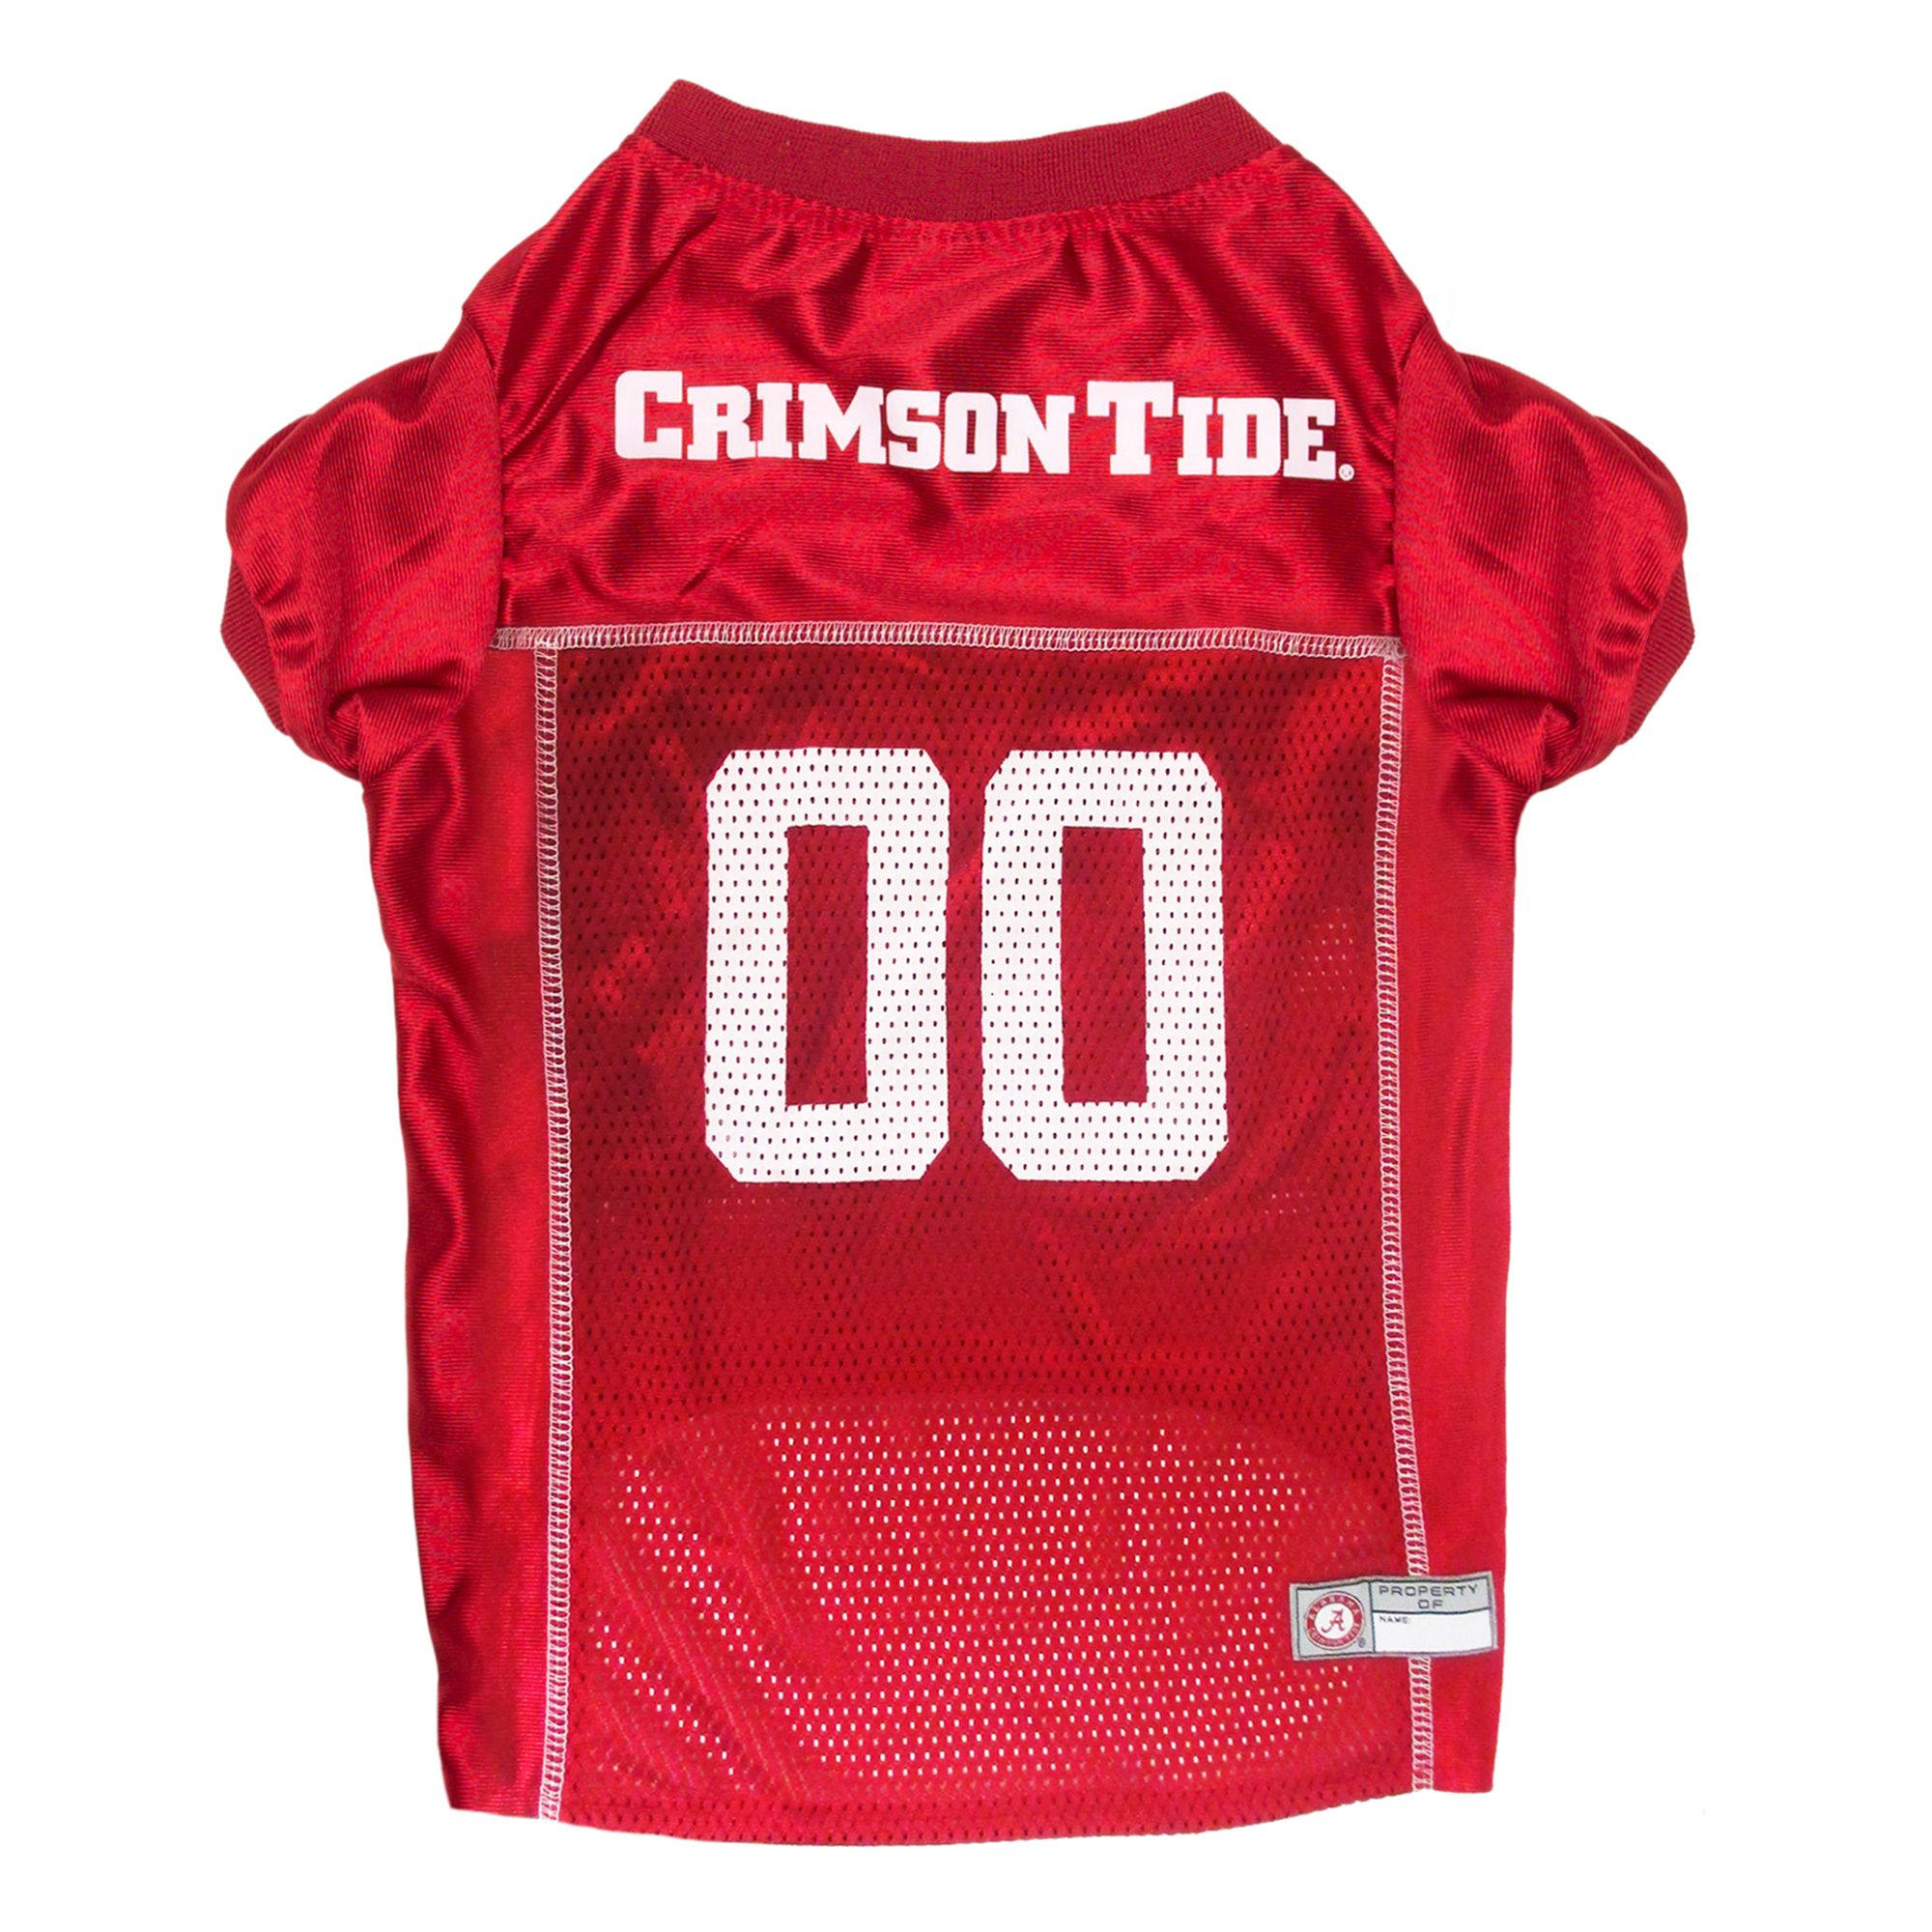 Alabama University Crimson Tide Ncaa Mesh Jersey size: Medium, Pets First 5259367